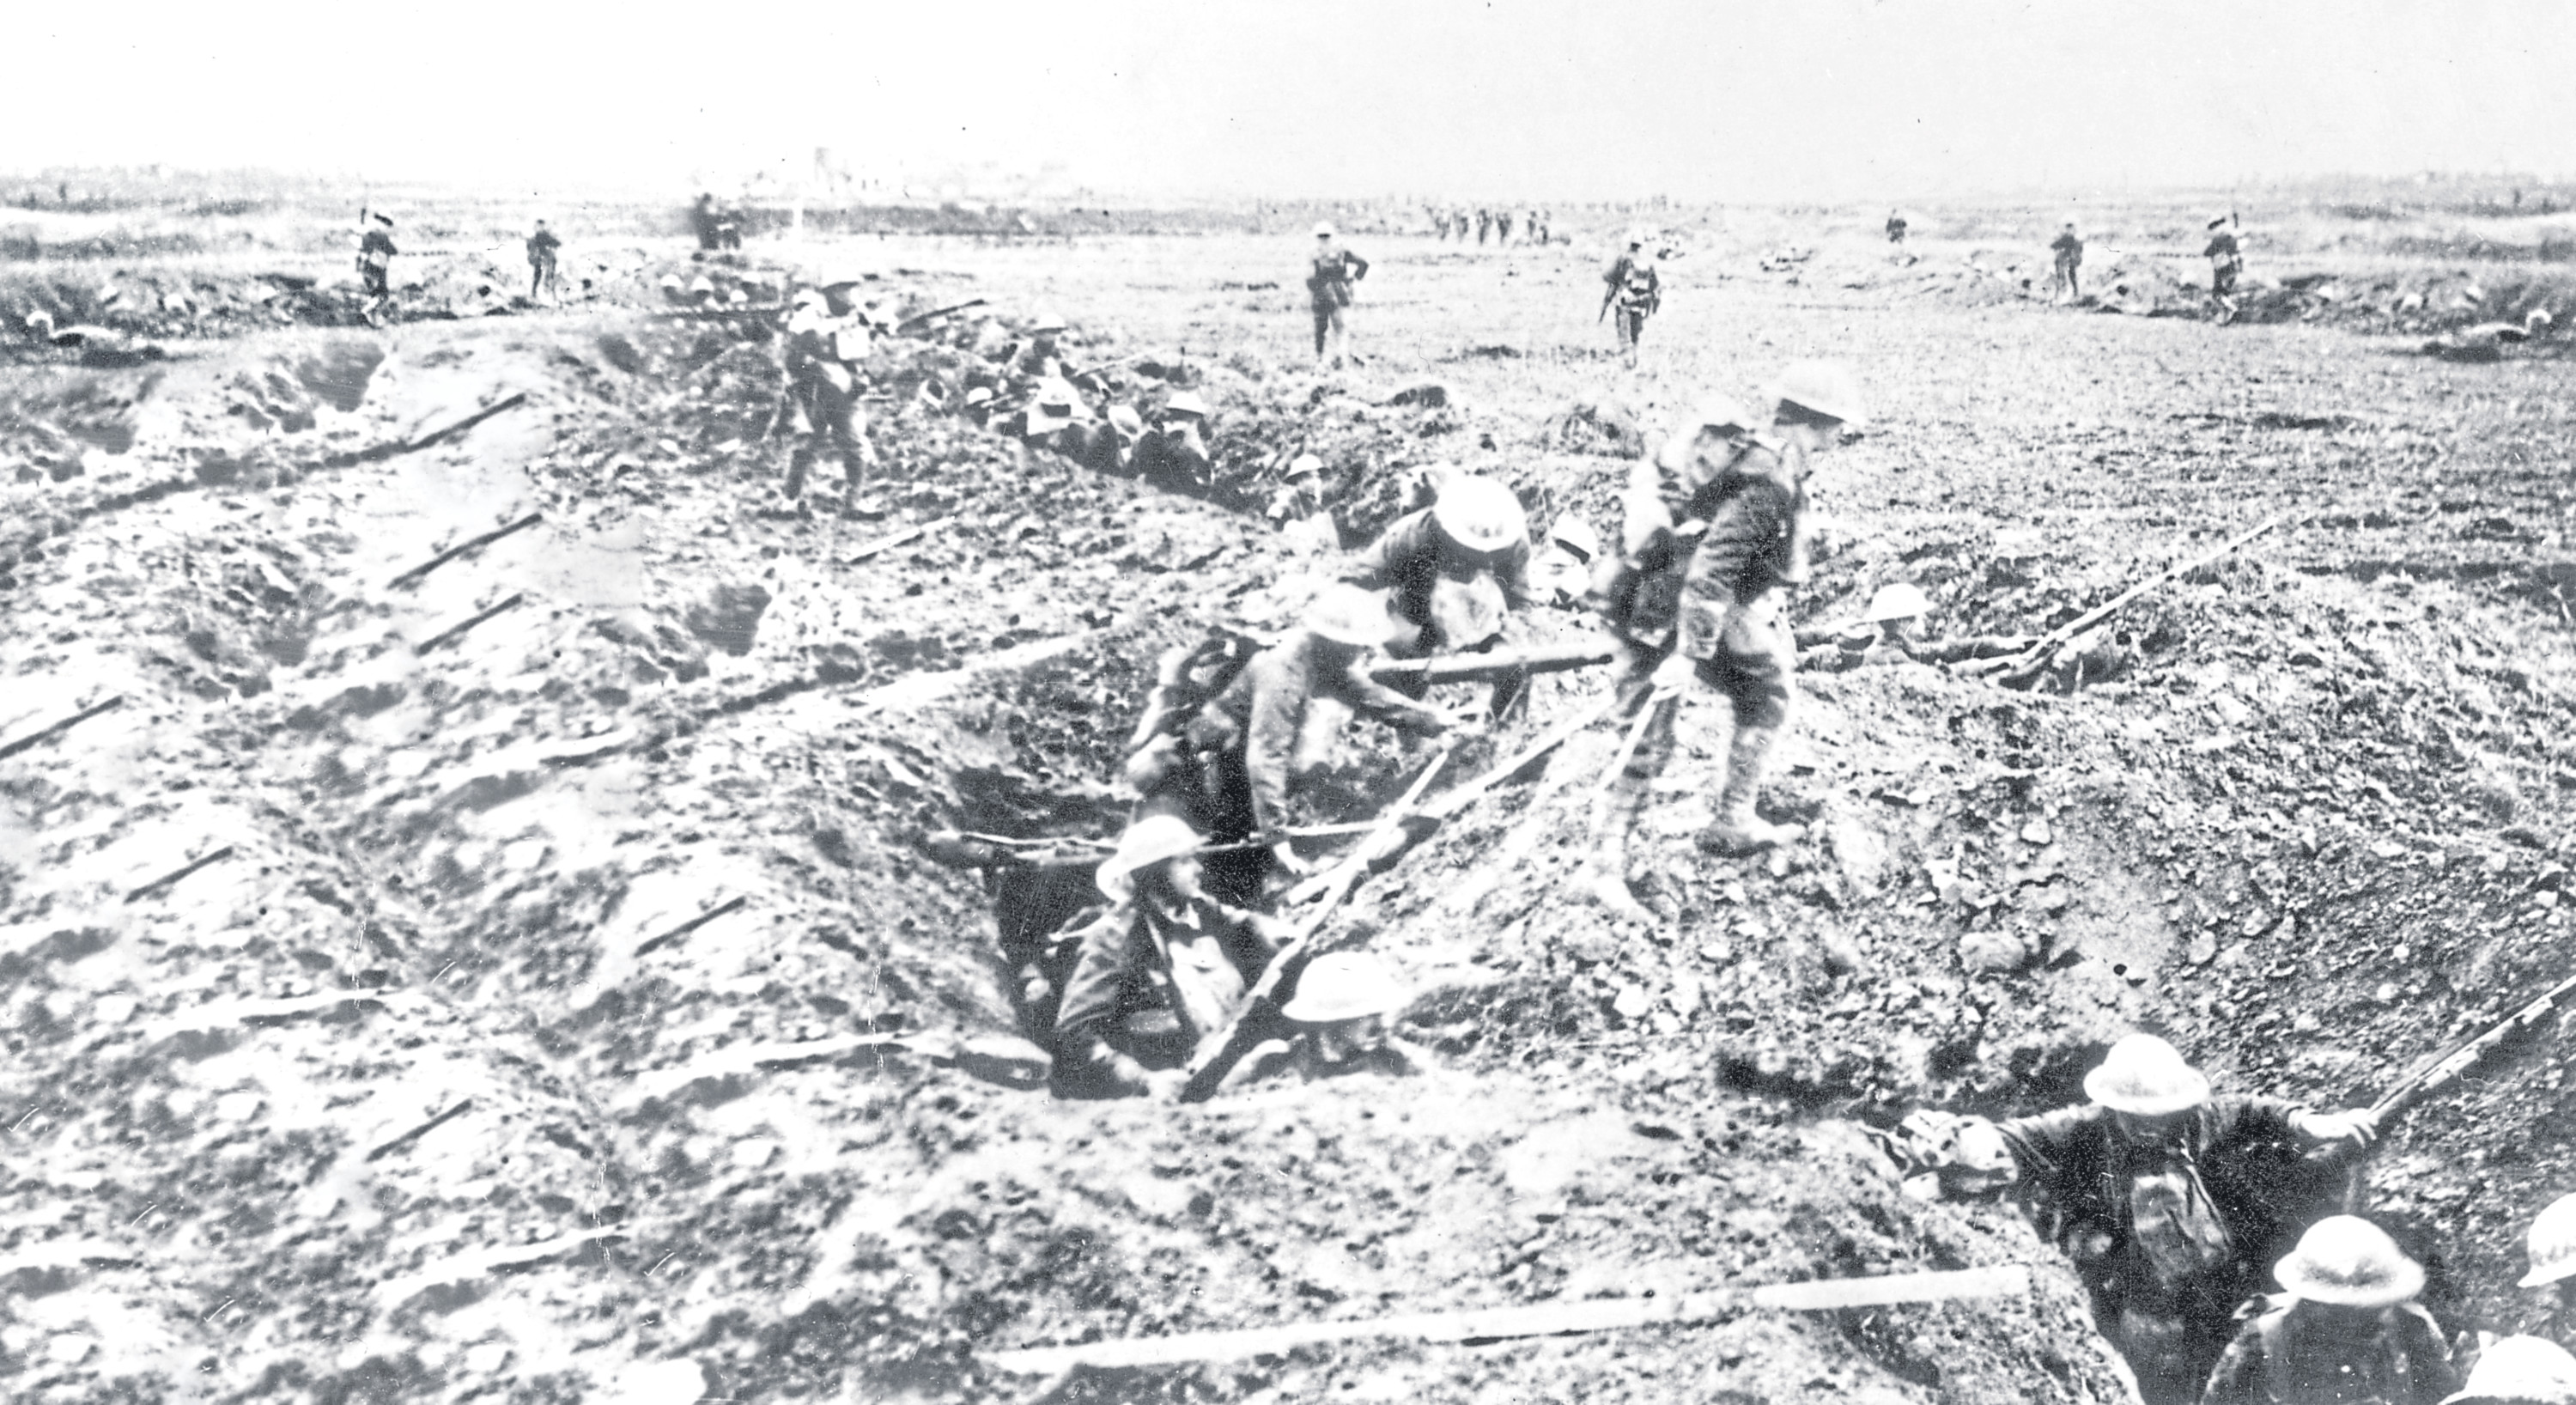 A scene from the Battle of Arras in 1917